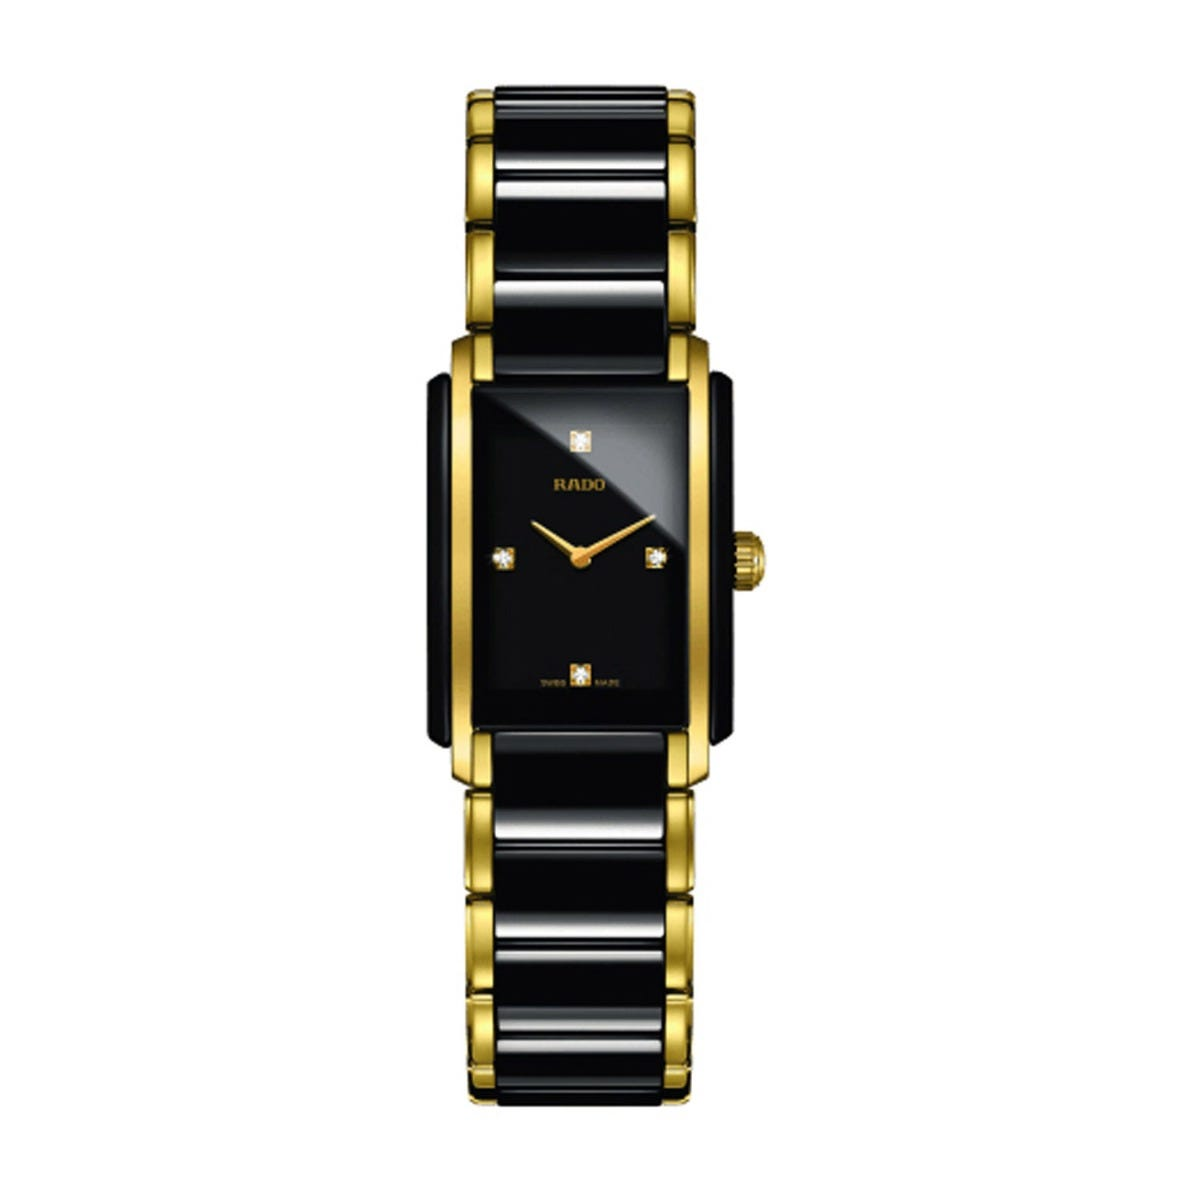 Rado Integral Rectangle Diamond Dot Black & Yellow Gold Bracelet Watch